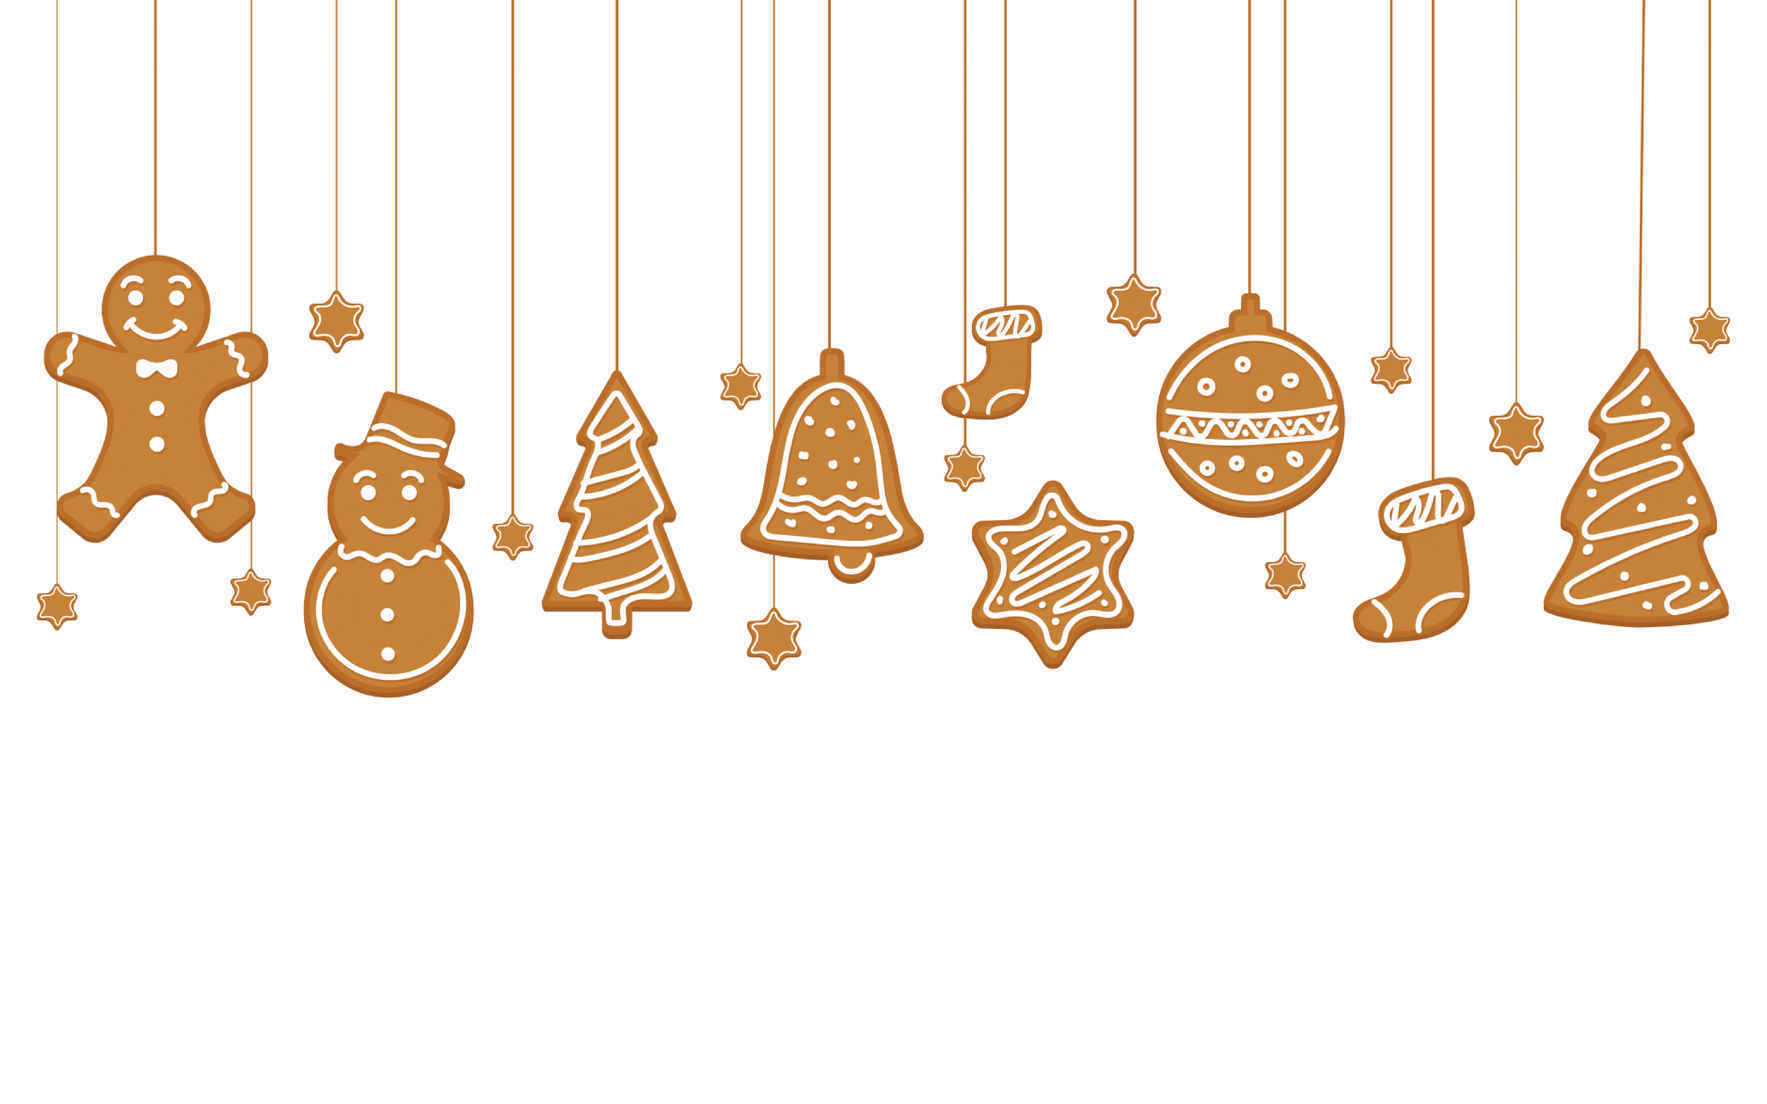 The Gingerbread Stroll image